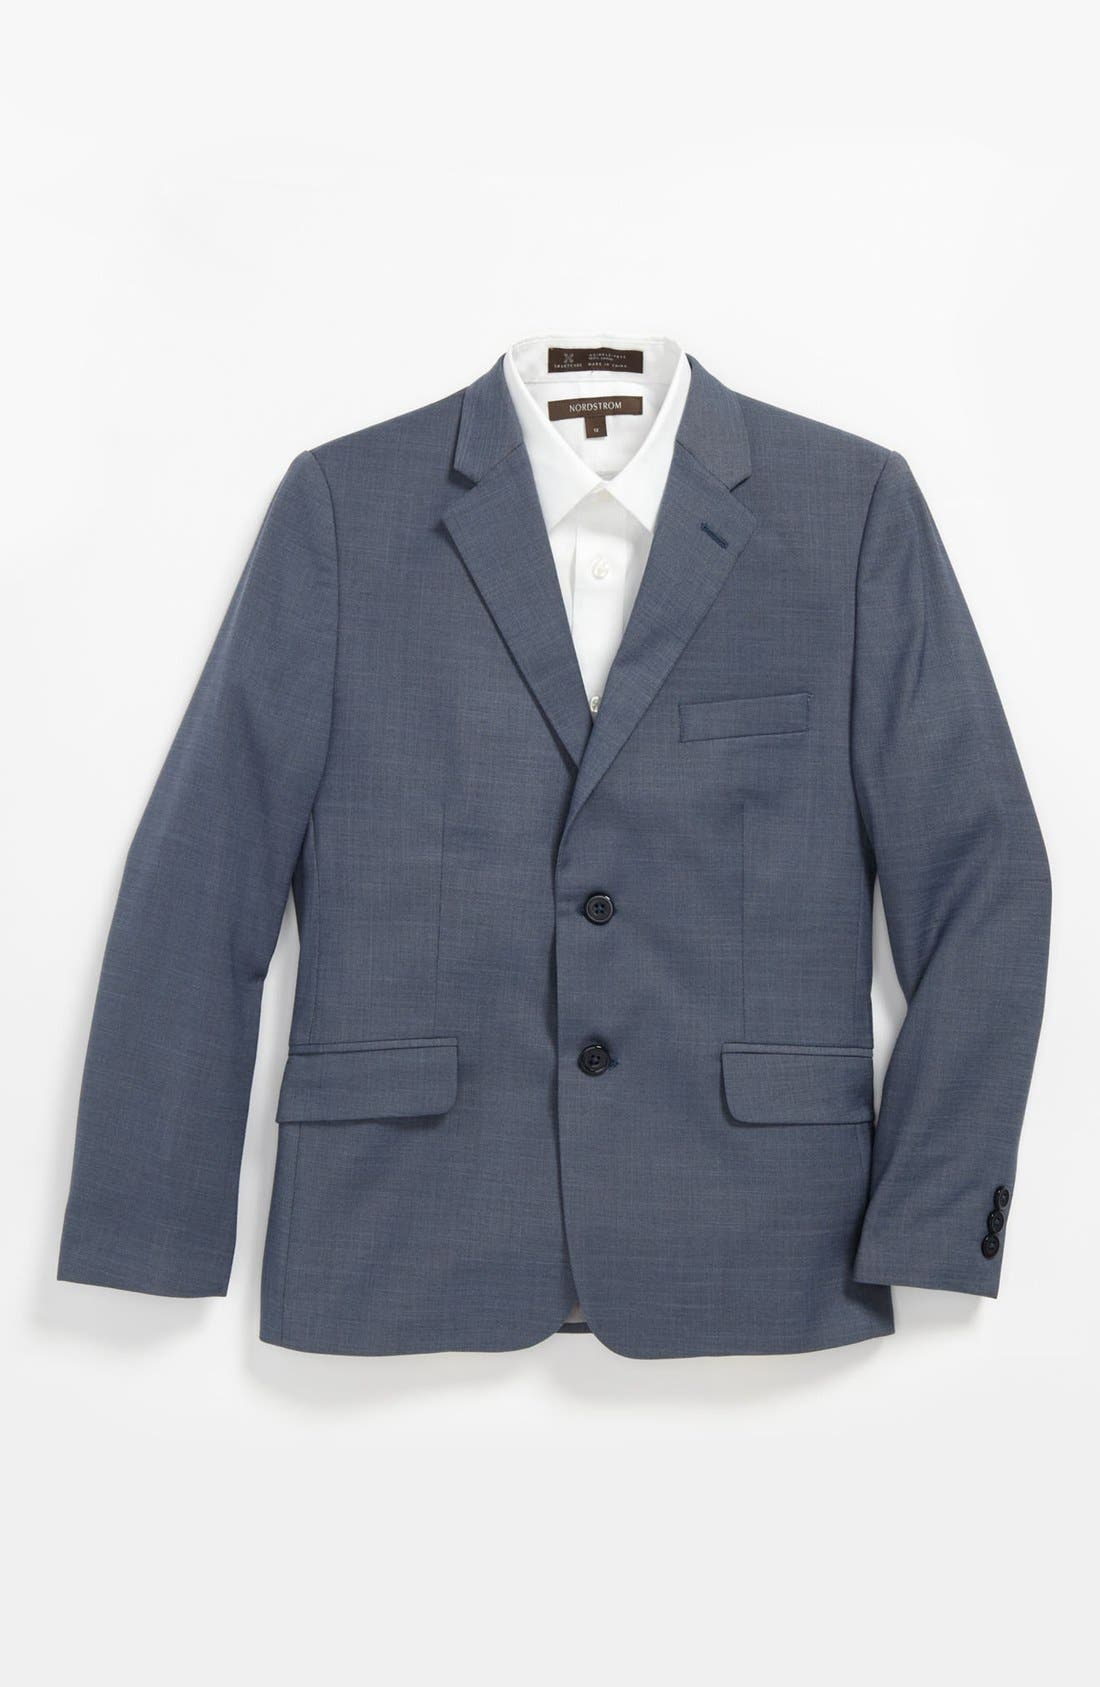 Alternate Image 1 Selected - C2 by Calibrate Two Button Jacket (Big Boys)